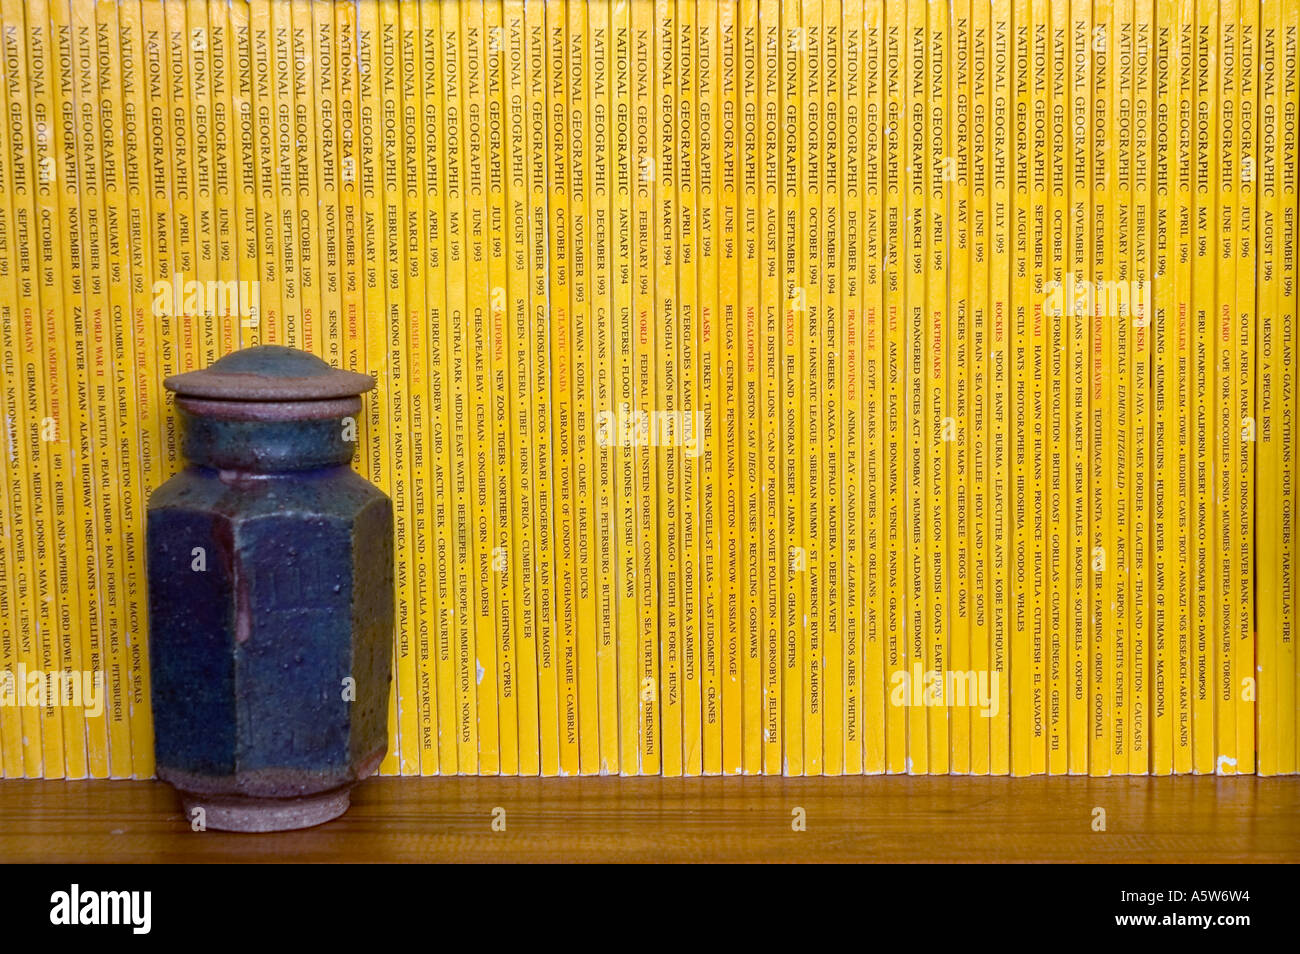 National Geographic magazines in a bookcase. Editorial use only. DSC_8519 - Stock Image